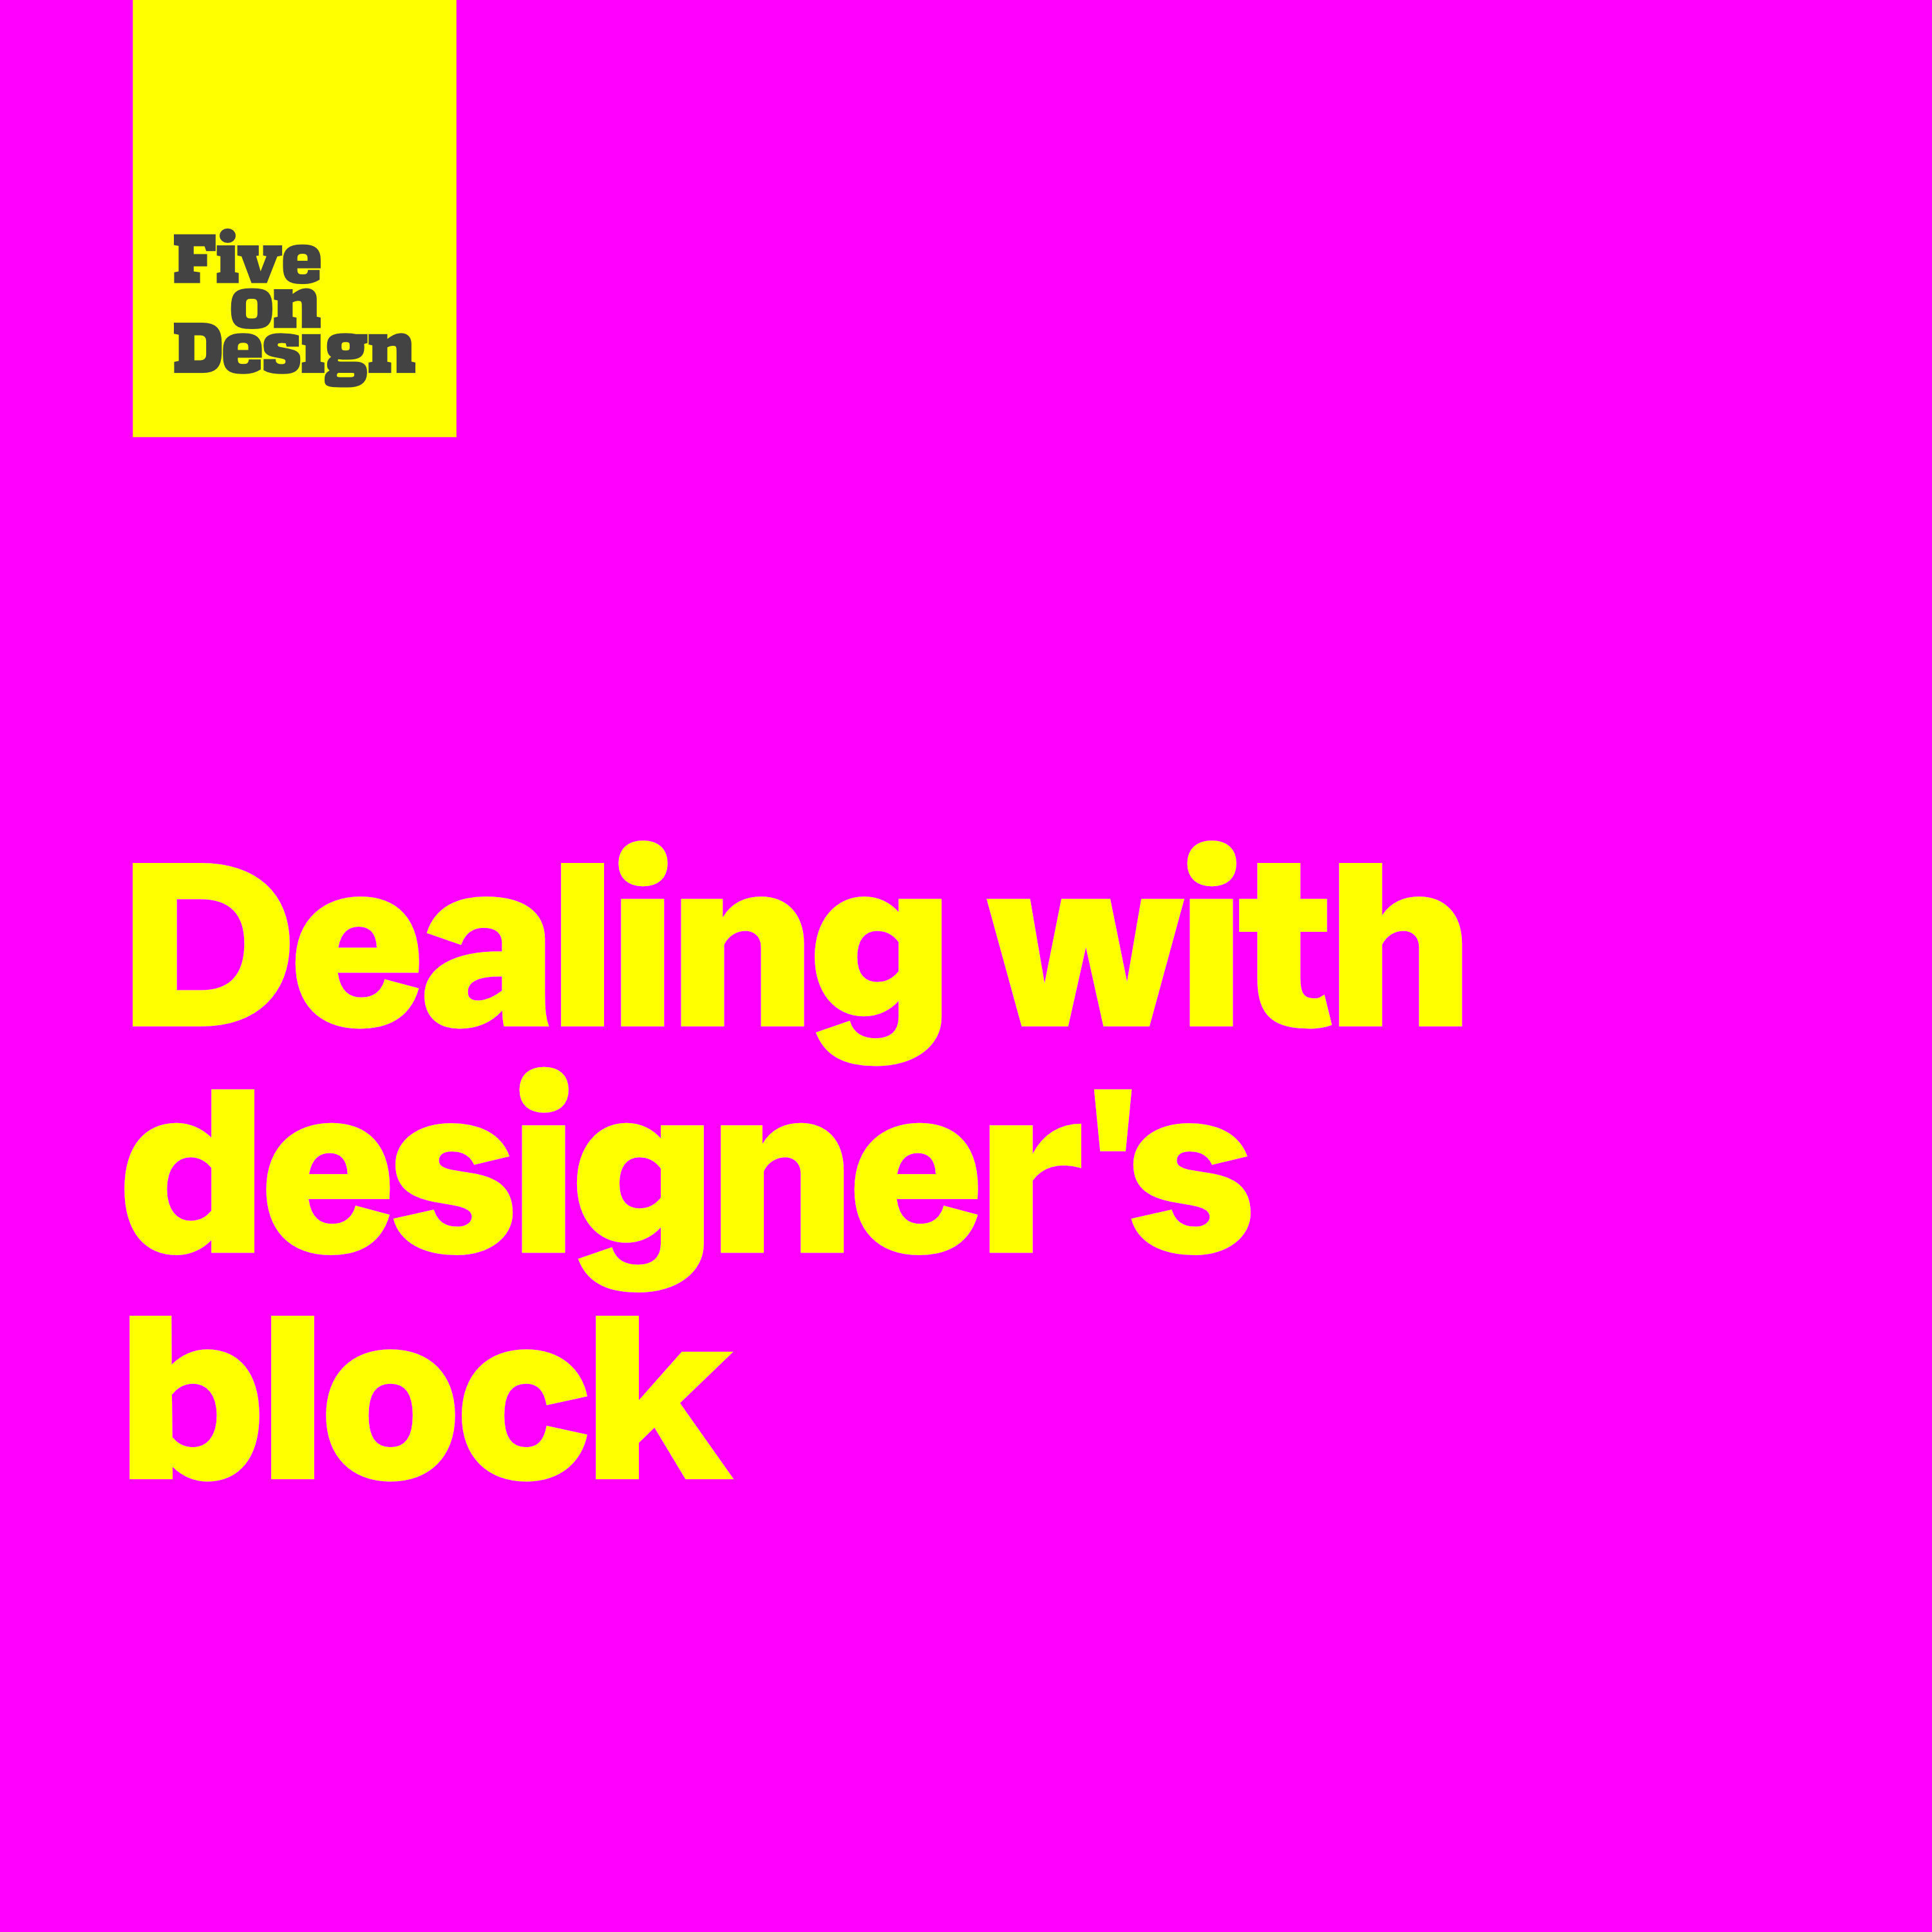 Dealing with designer's block